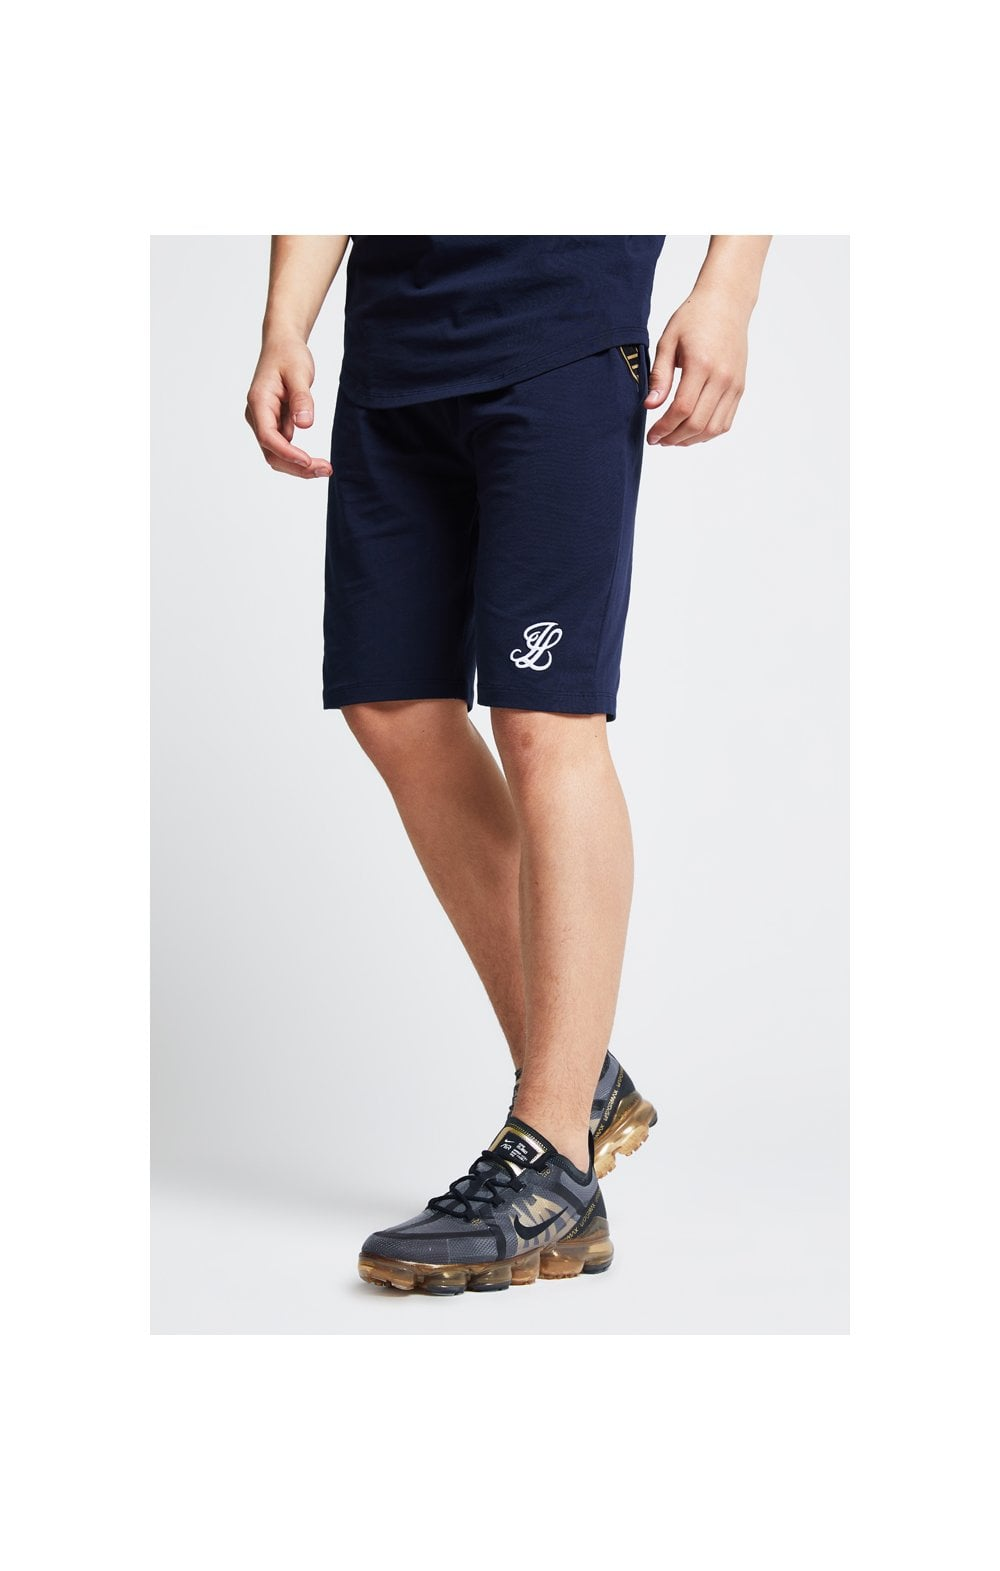 Load image into Gallery viewer, Illusive London Tape Jersey Shorts - Navy (1)